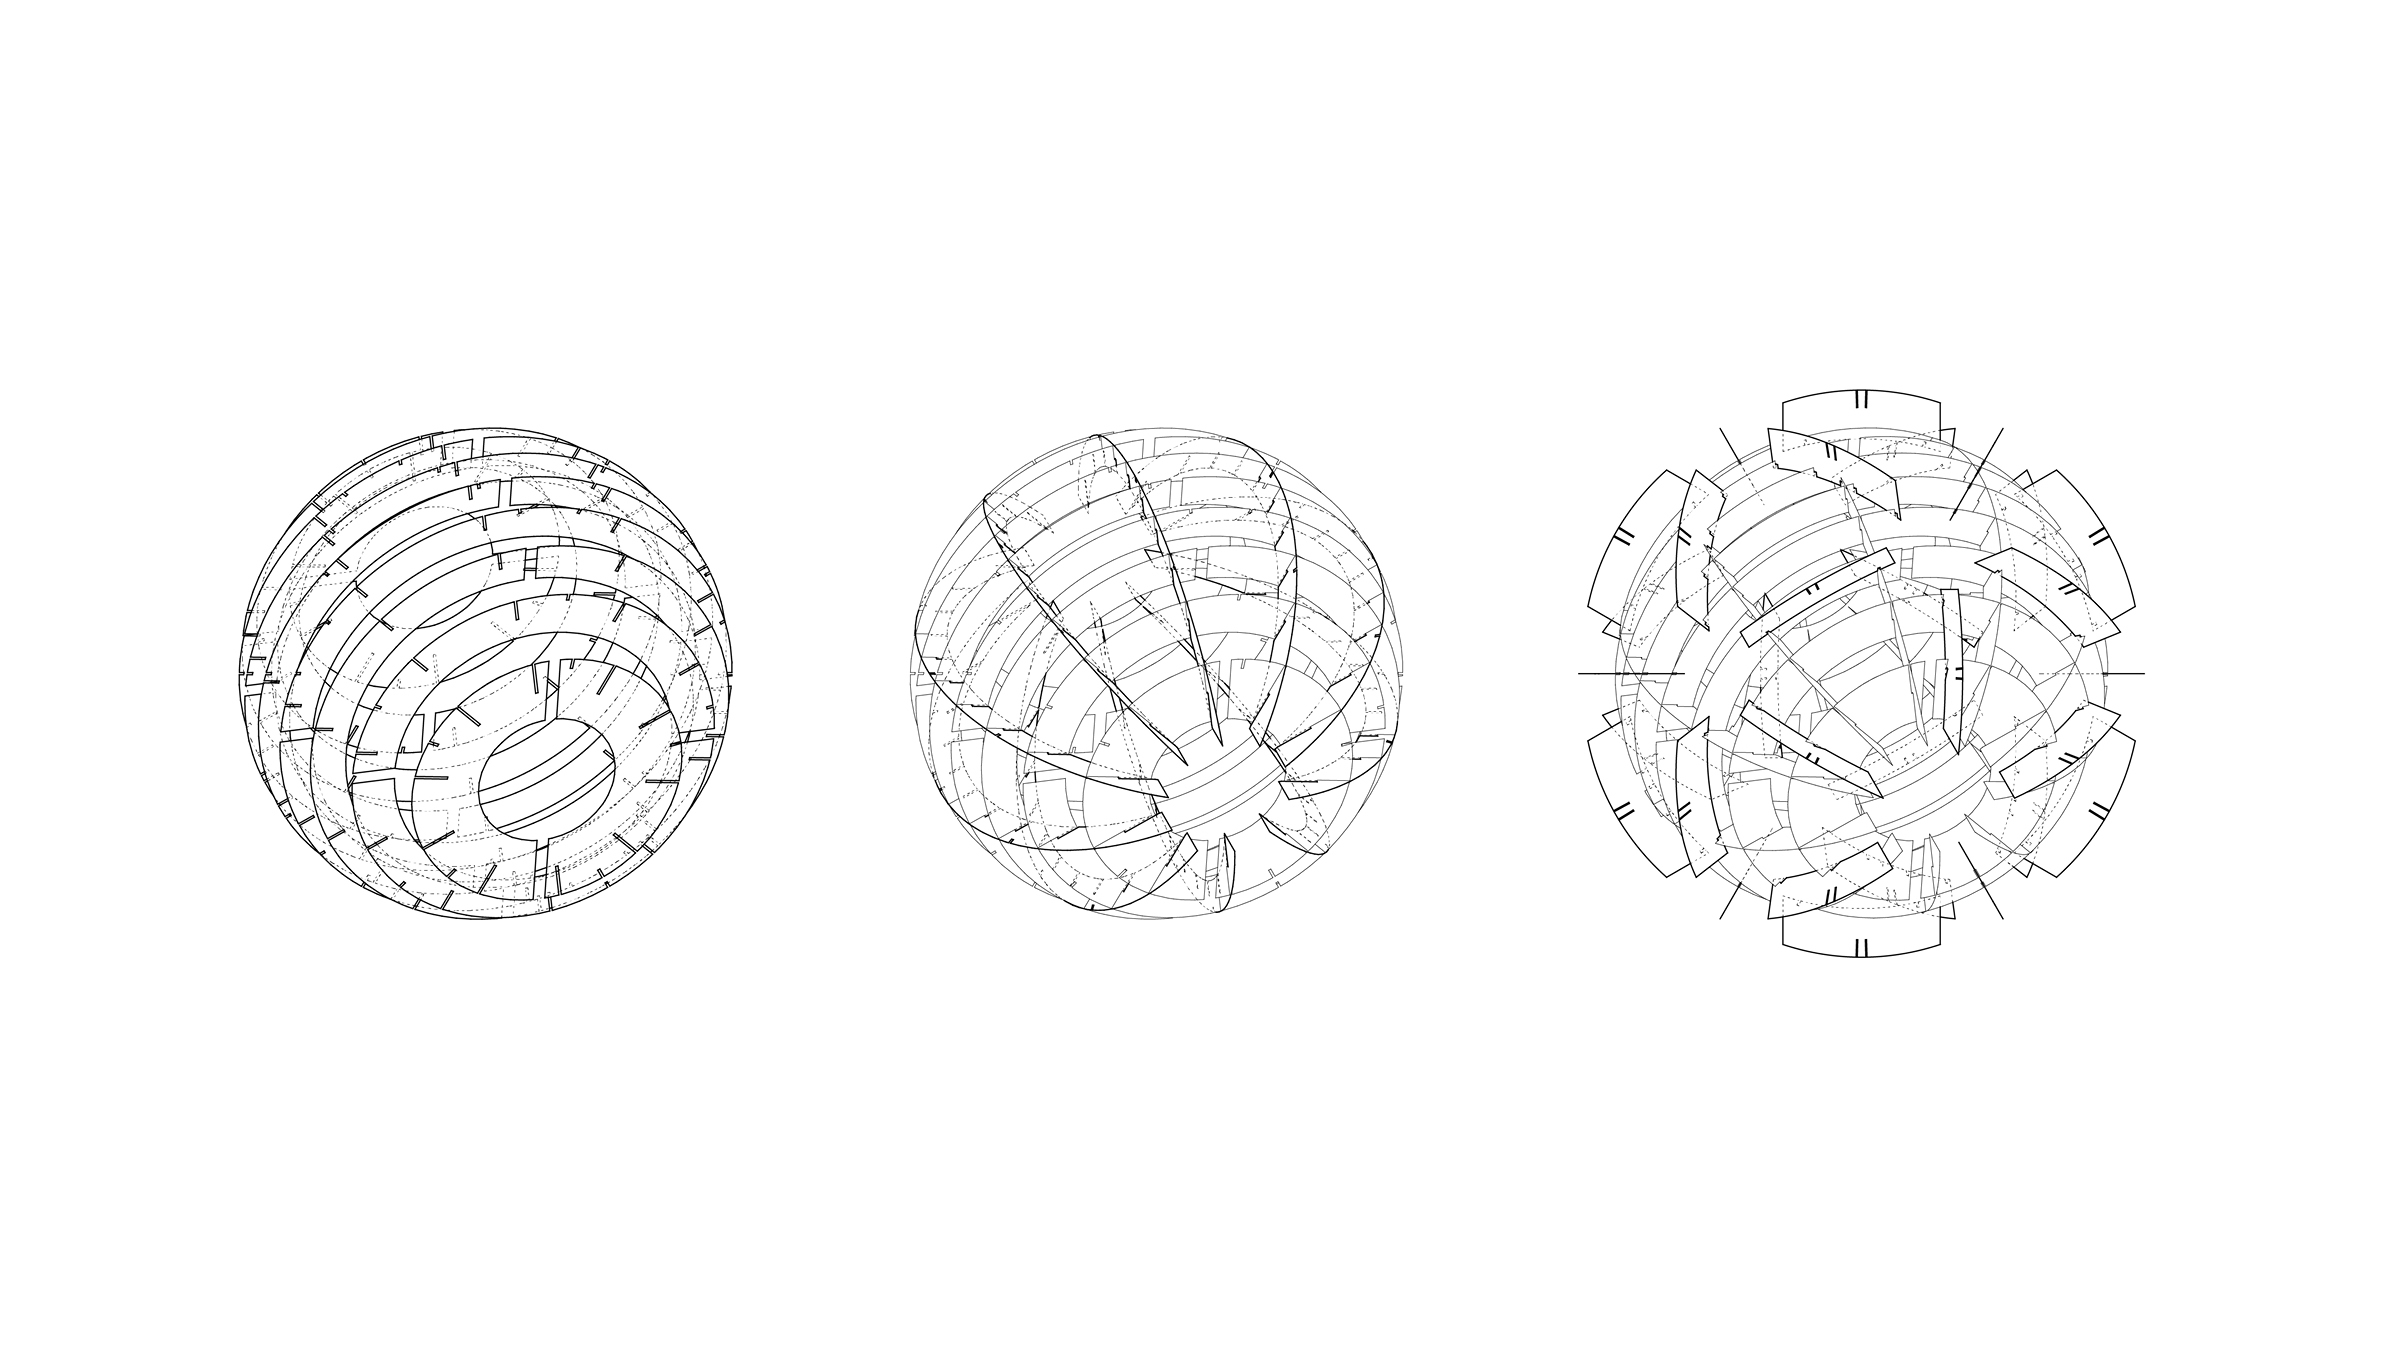 sphere with nested figures images21.jpg